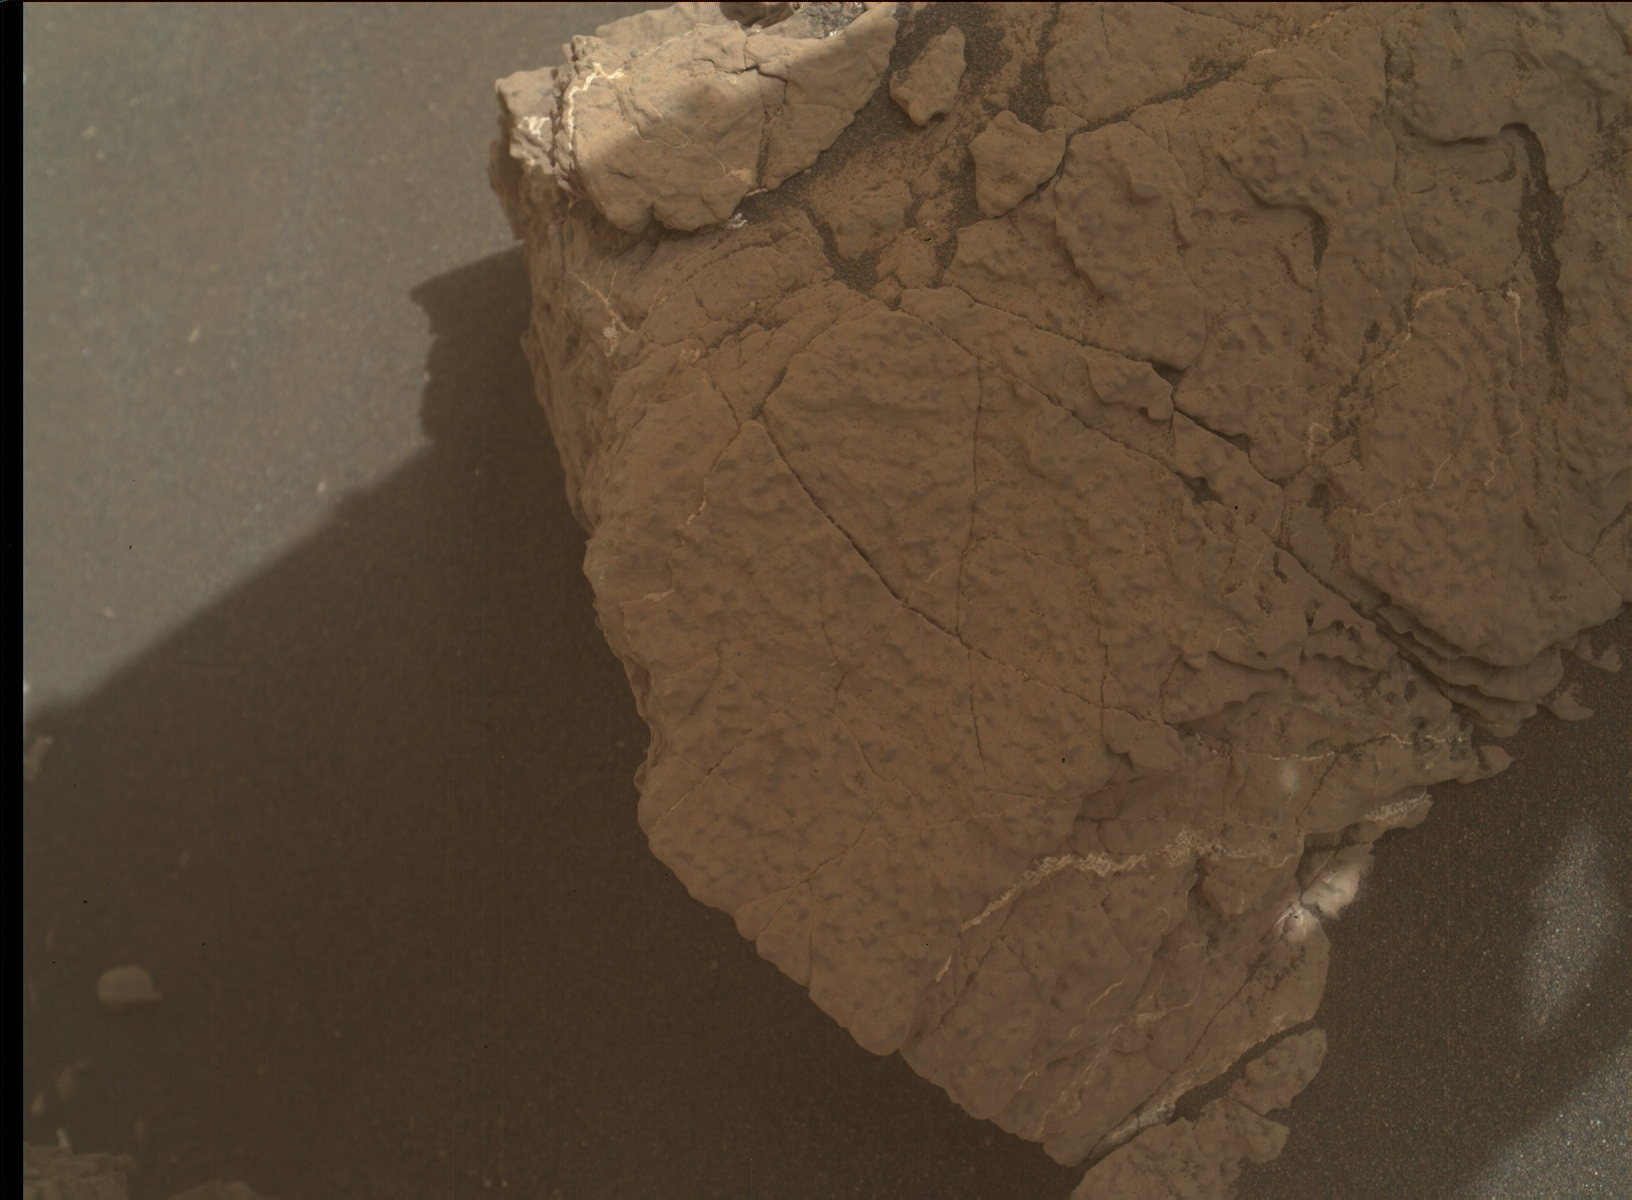 Nasa's Mars rover Curiosity acquired this image using its Mars Hand Lens Imager (MAHLI) on Sol 3024